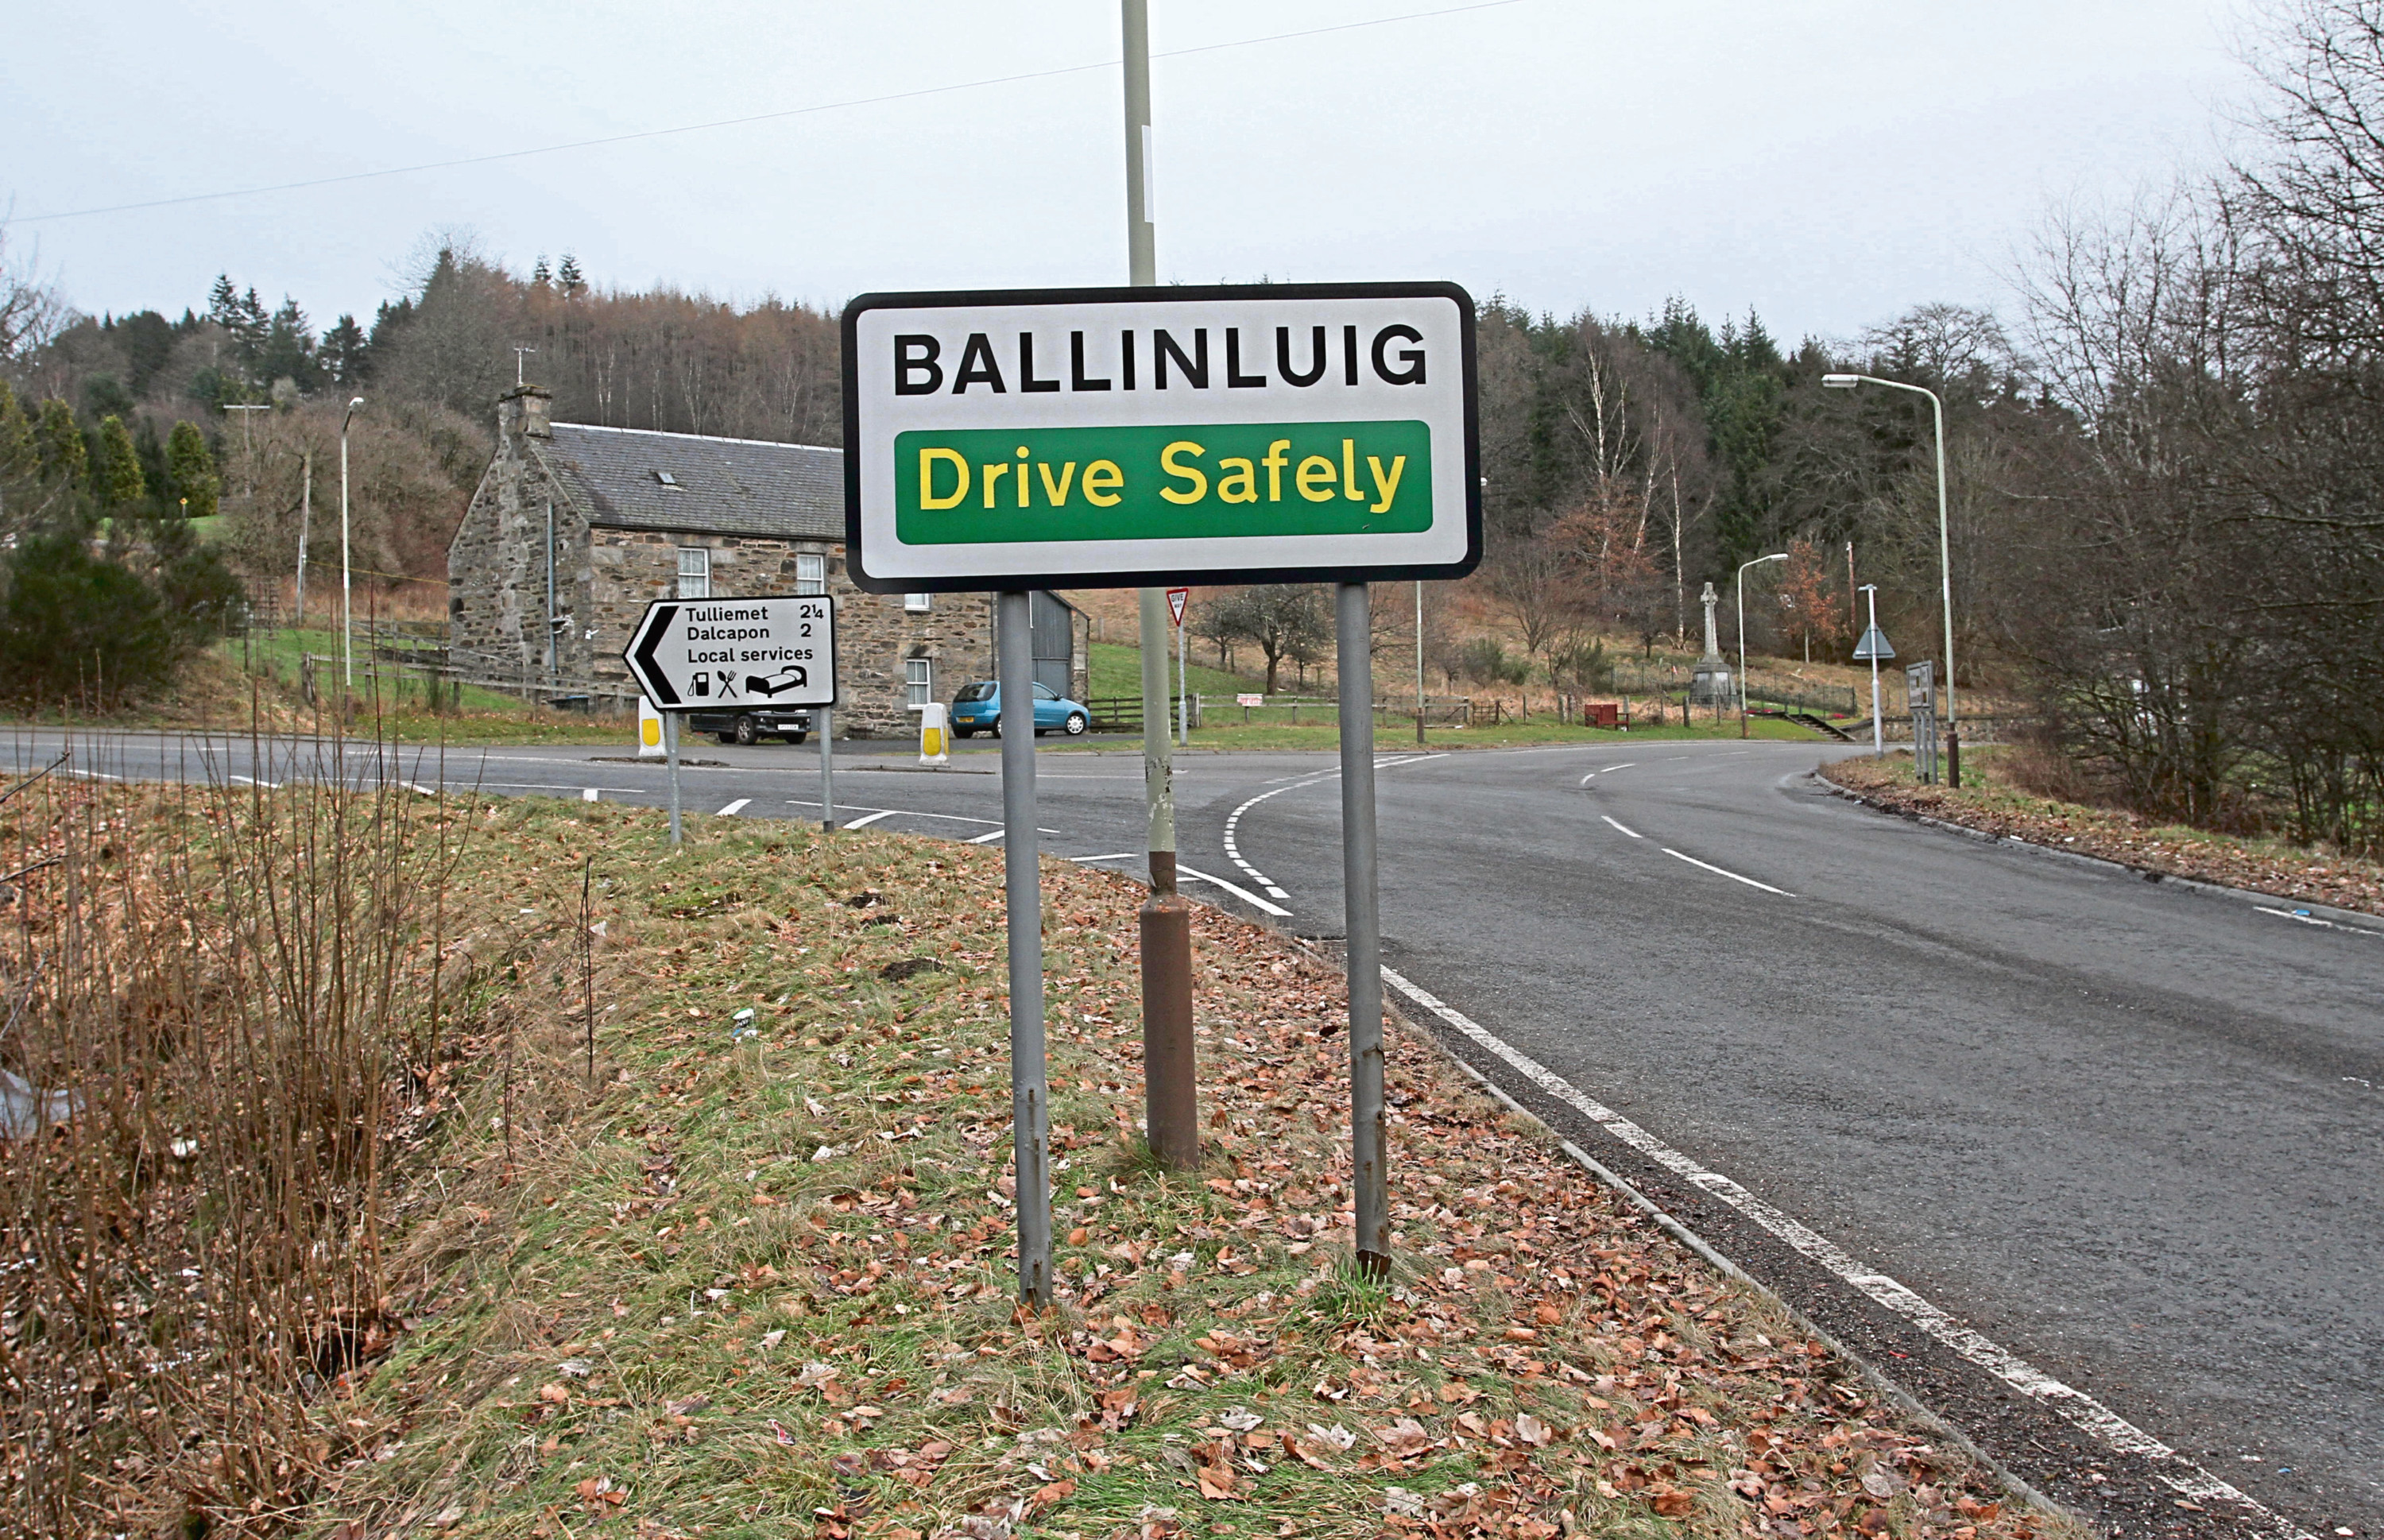 The accident happened near Ballinluig